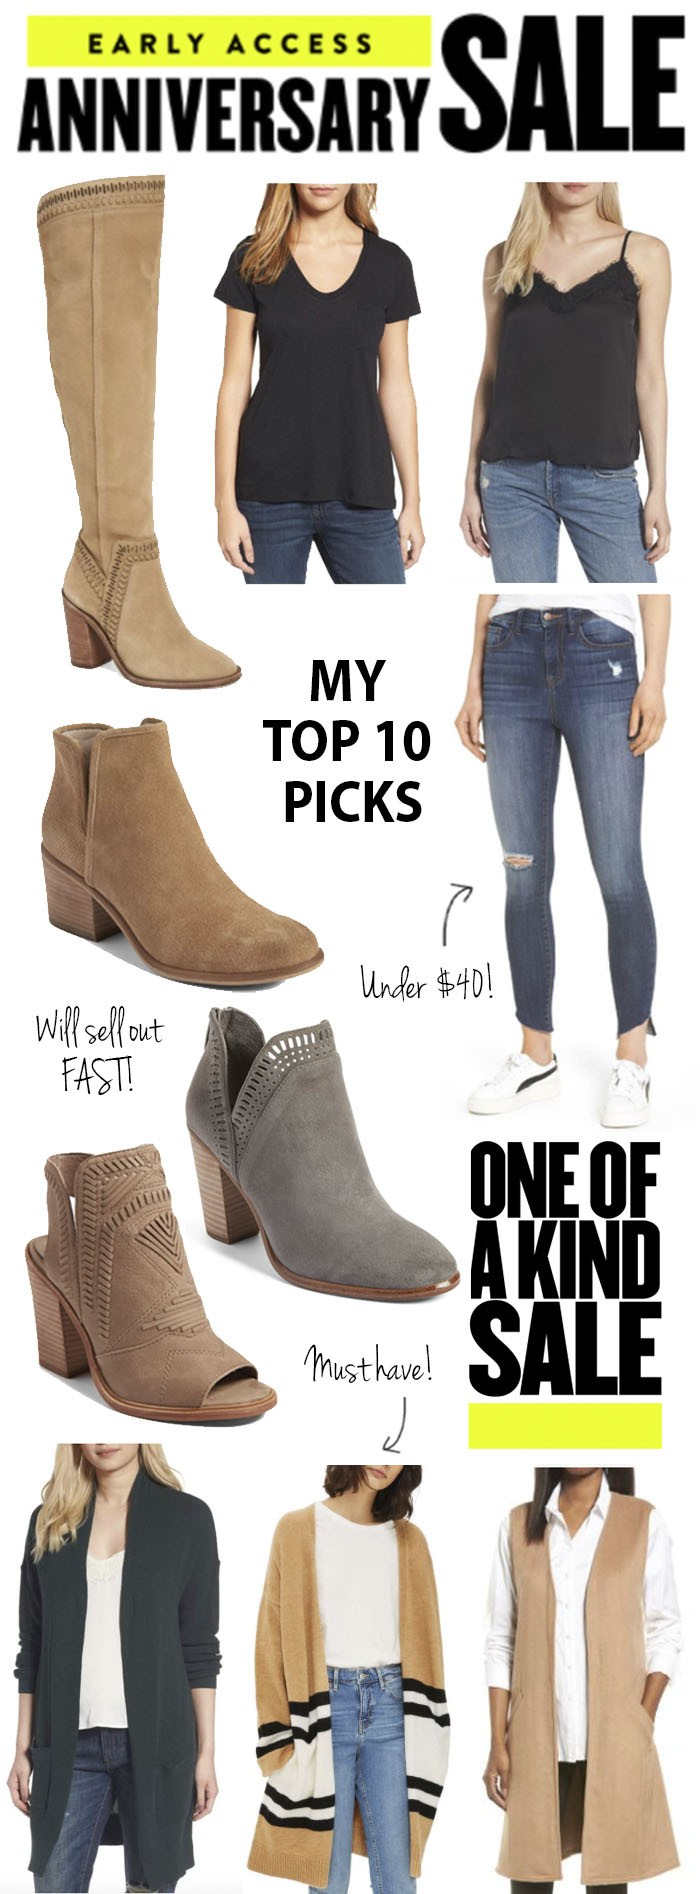 Nordstrom Anniversary Sale Early Access Top Picks | Chasing Cinderella